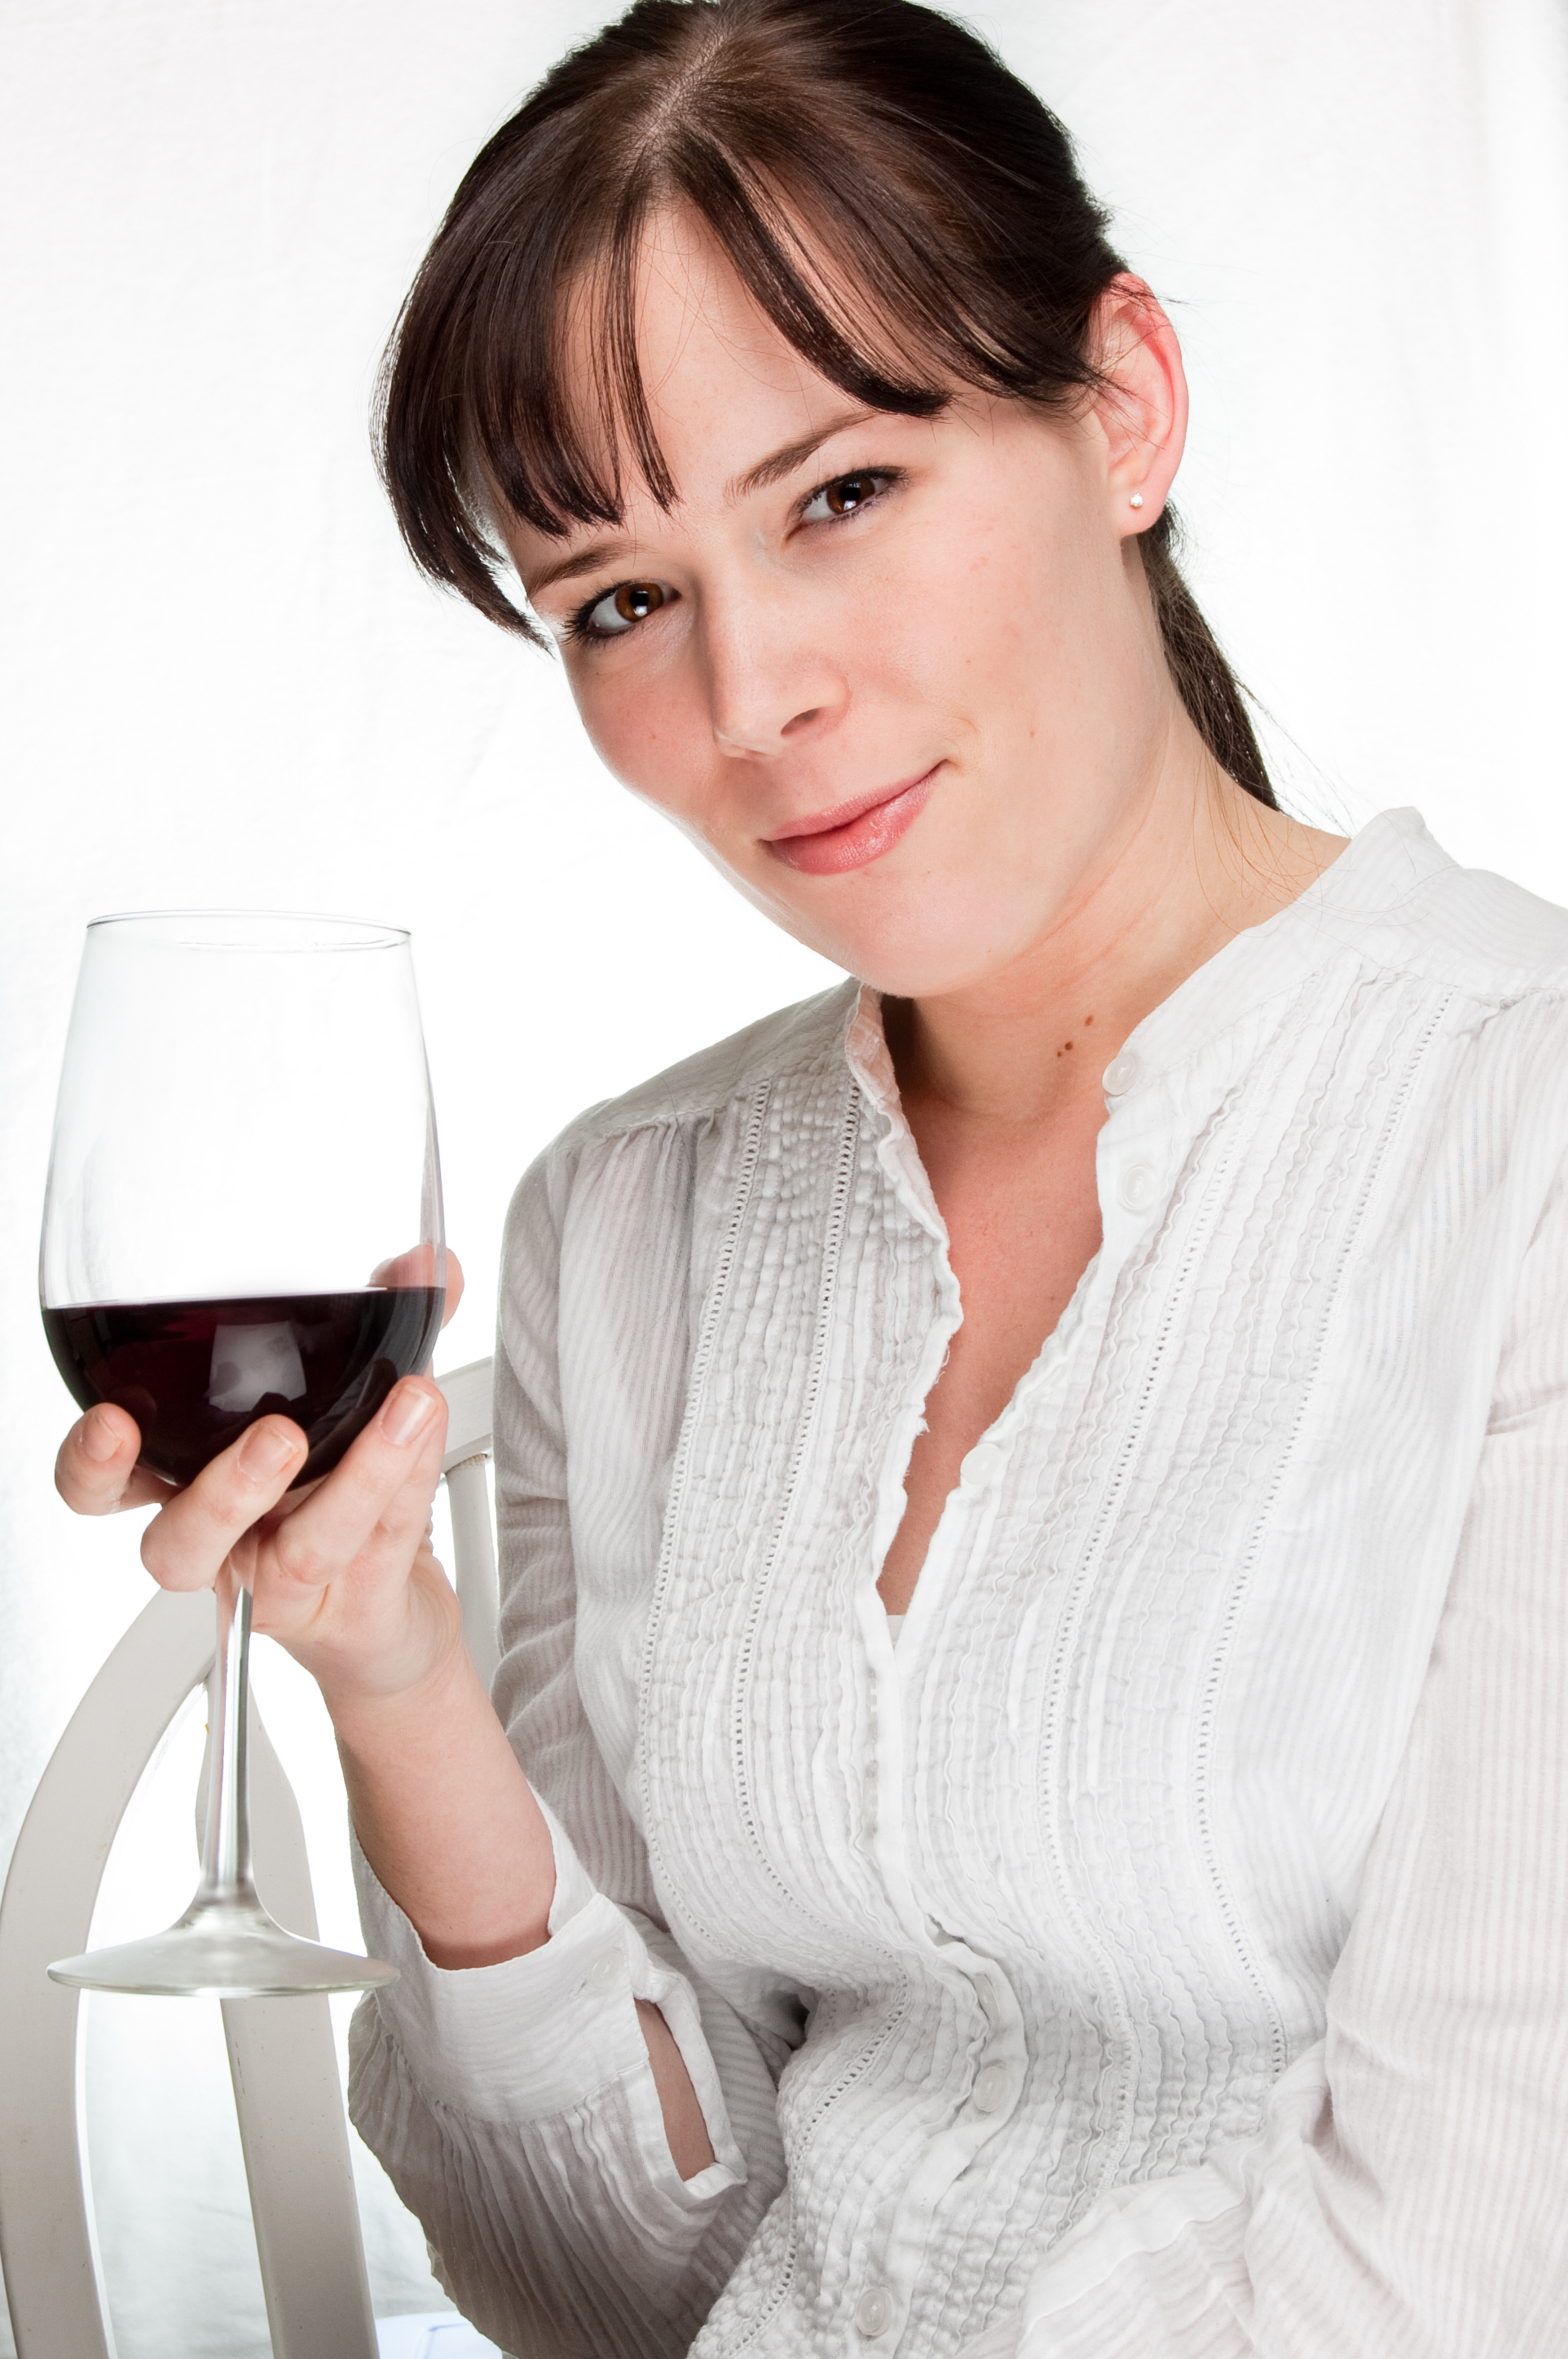 What Do Wine Reviewers Look For?